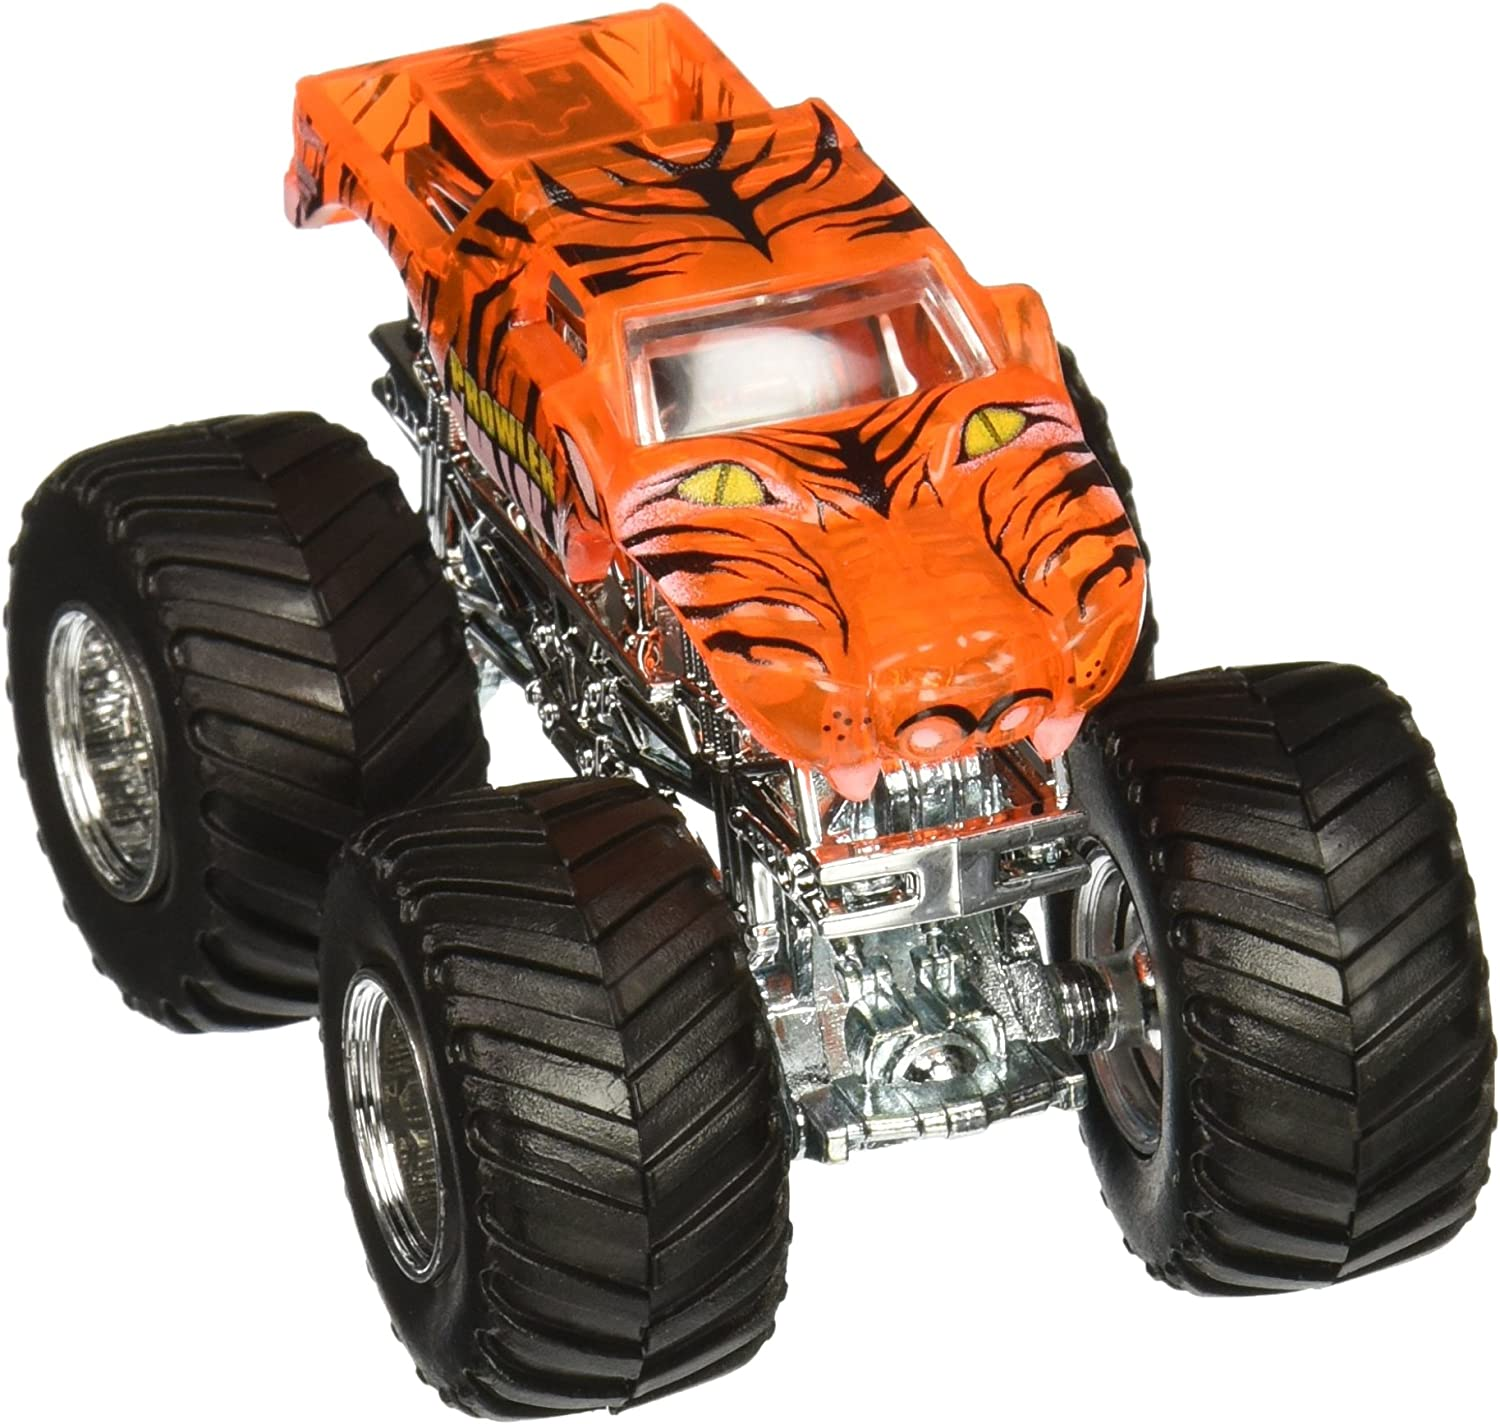 Hot Wheels Monster Jam 1 64 Scale  Prowler with Stunt Ramp  11 by Hot Wheels